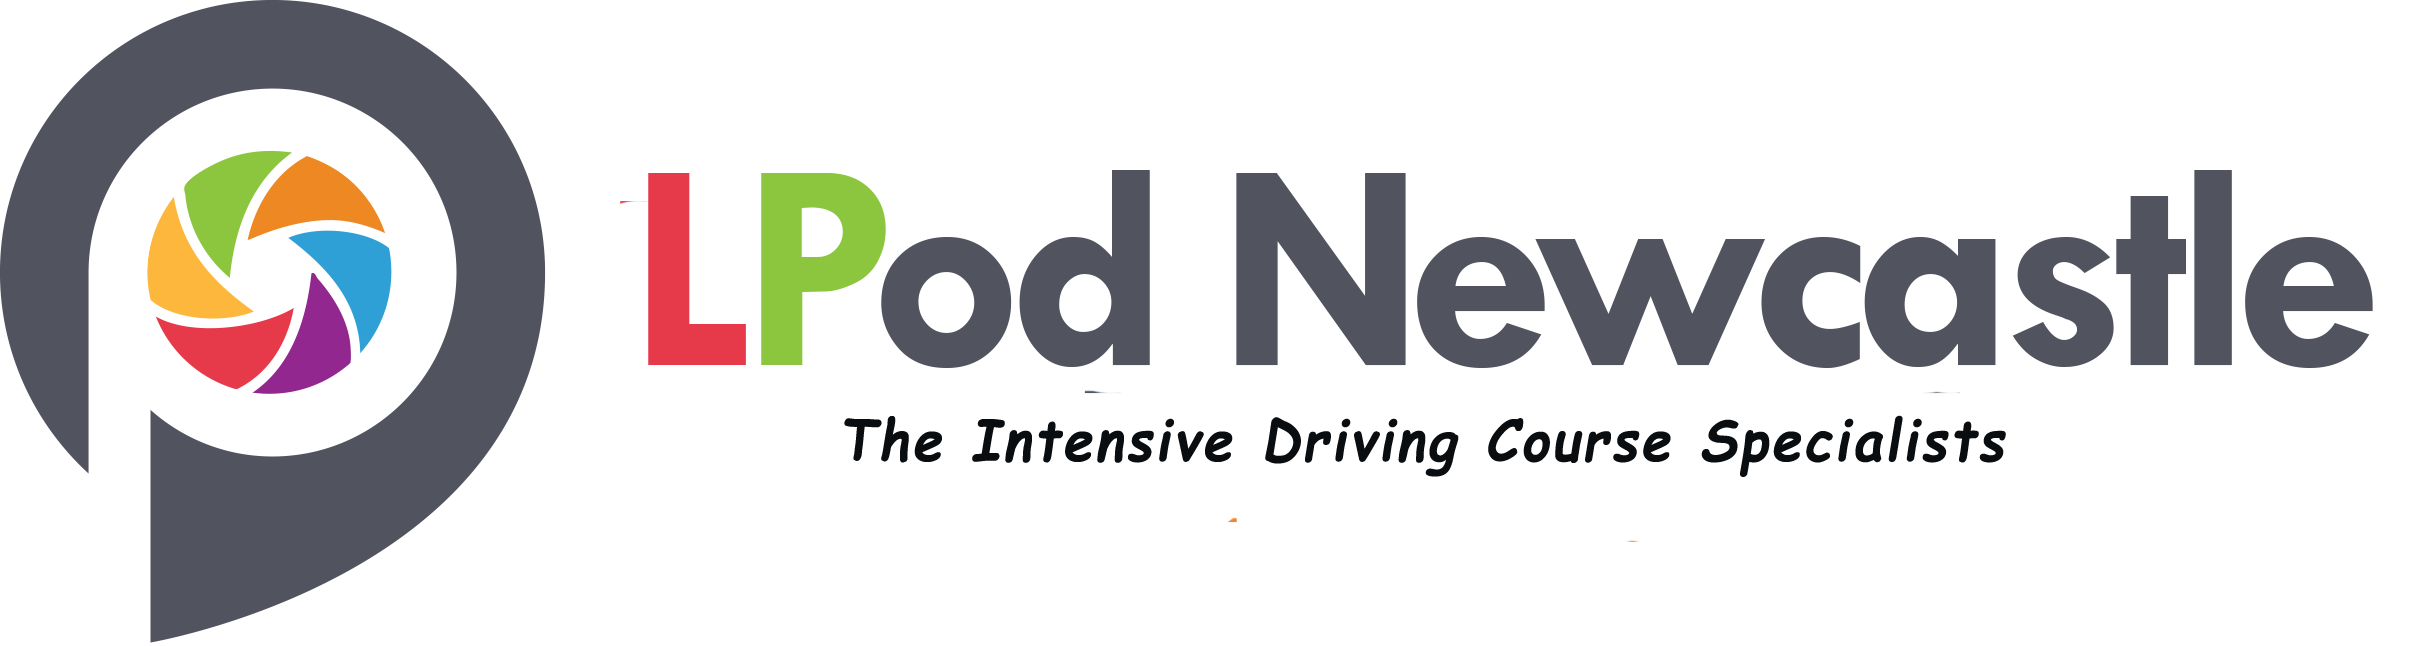 intensive driving courses newcastle, intensive driving lessons newcastle, intensive driving school newcastle